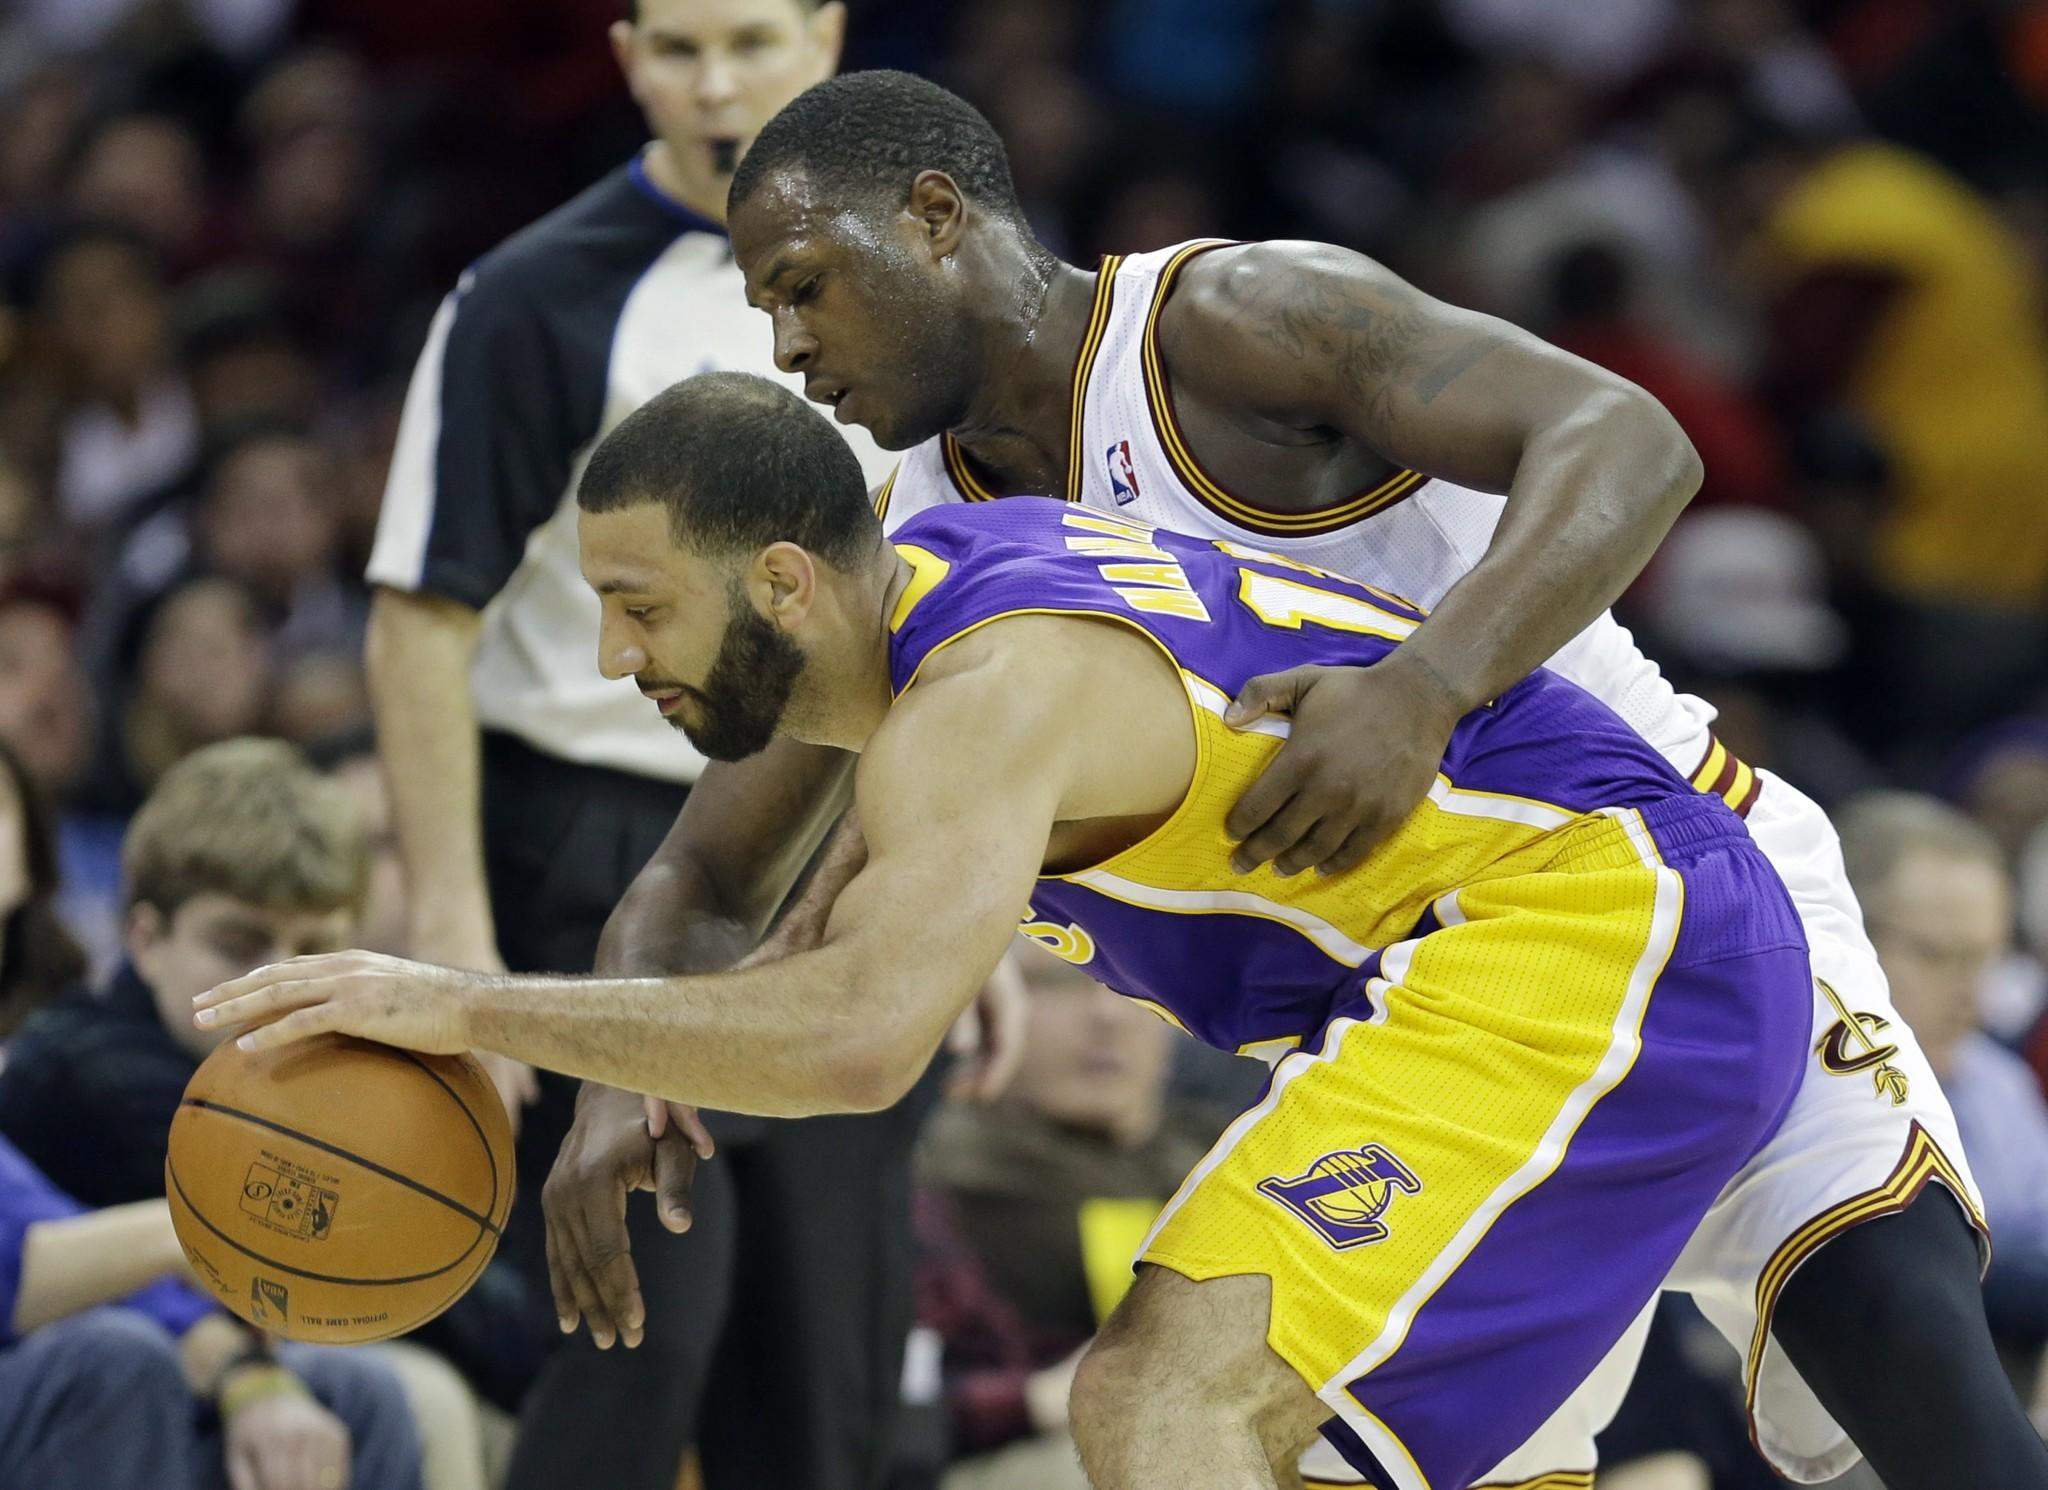 Kendall Marshall is defended by Cleveland's Dion Waiters during the fourth quarter of the Lakers' 119-108 win Wednesday over the Cavaliers.